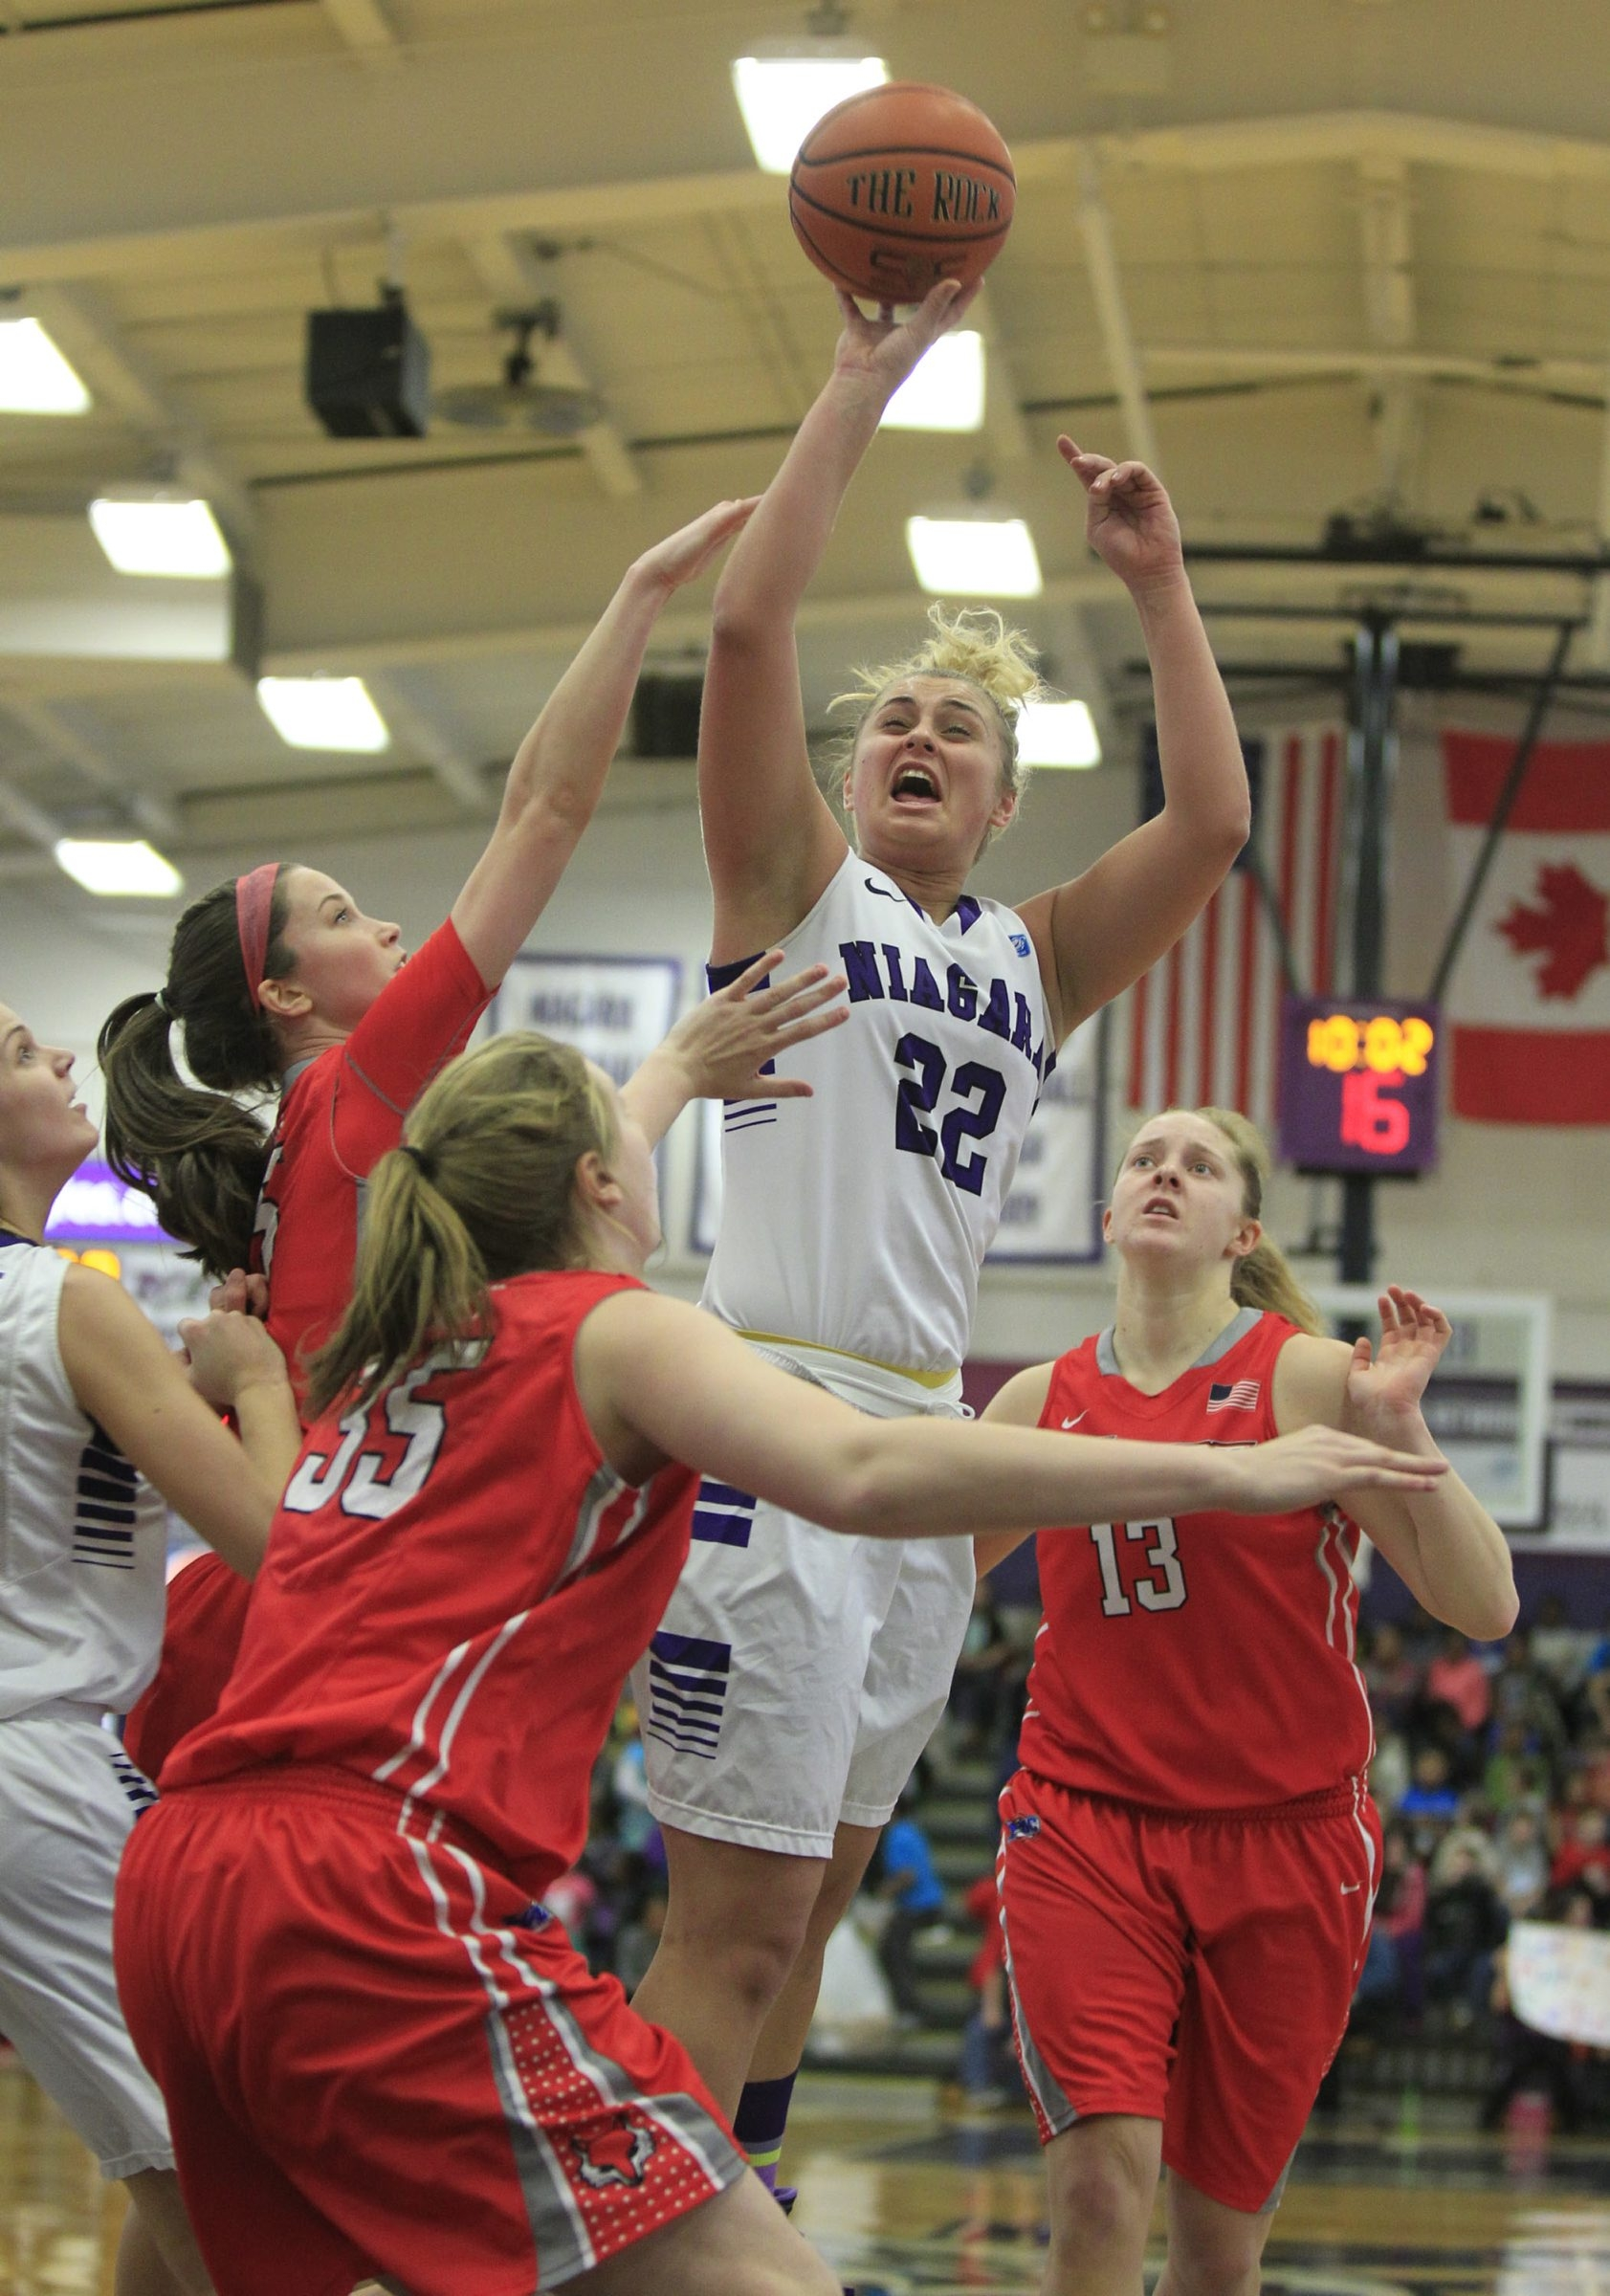 The Marist Red Foxes surround Niagara's Victoria Rampado during a 74-59 victory during at Niagara on Friday.